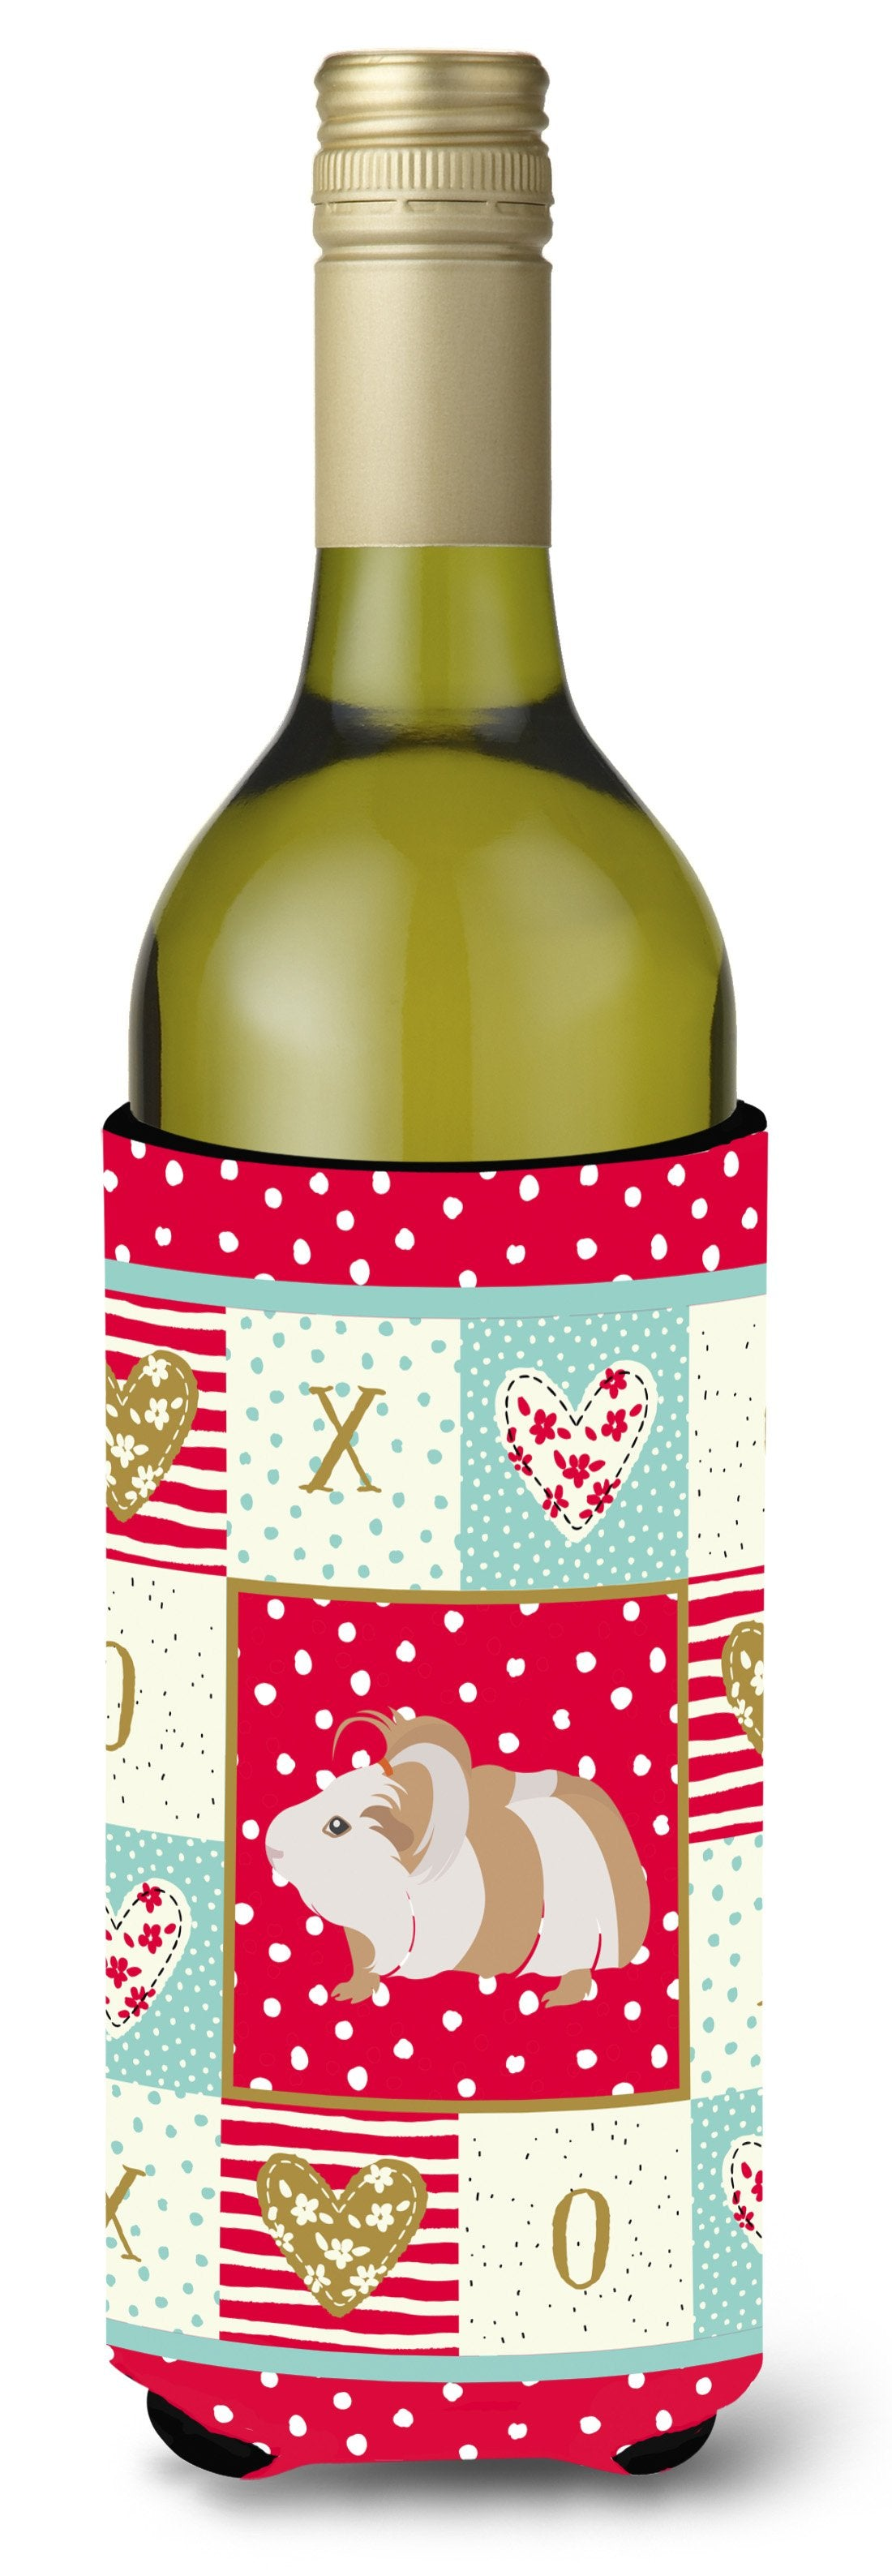 Silkie Guinea Pig Love Wine Bottle Hugger CK5434LITERK by Caroline's Treasures